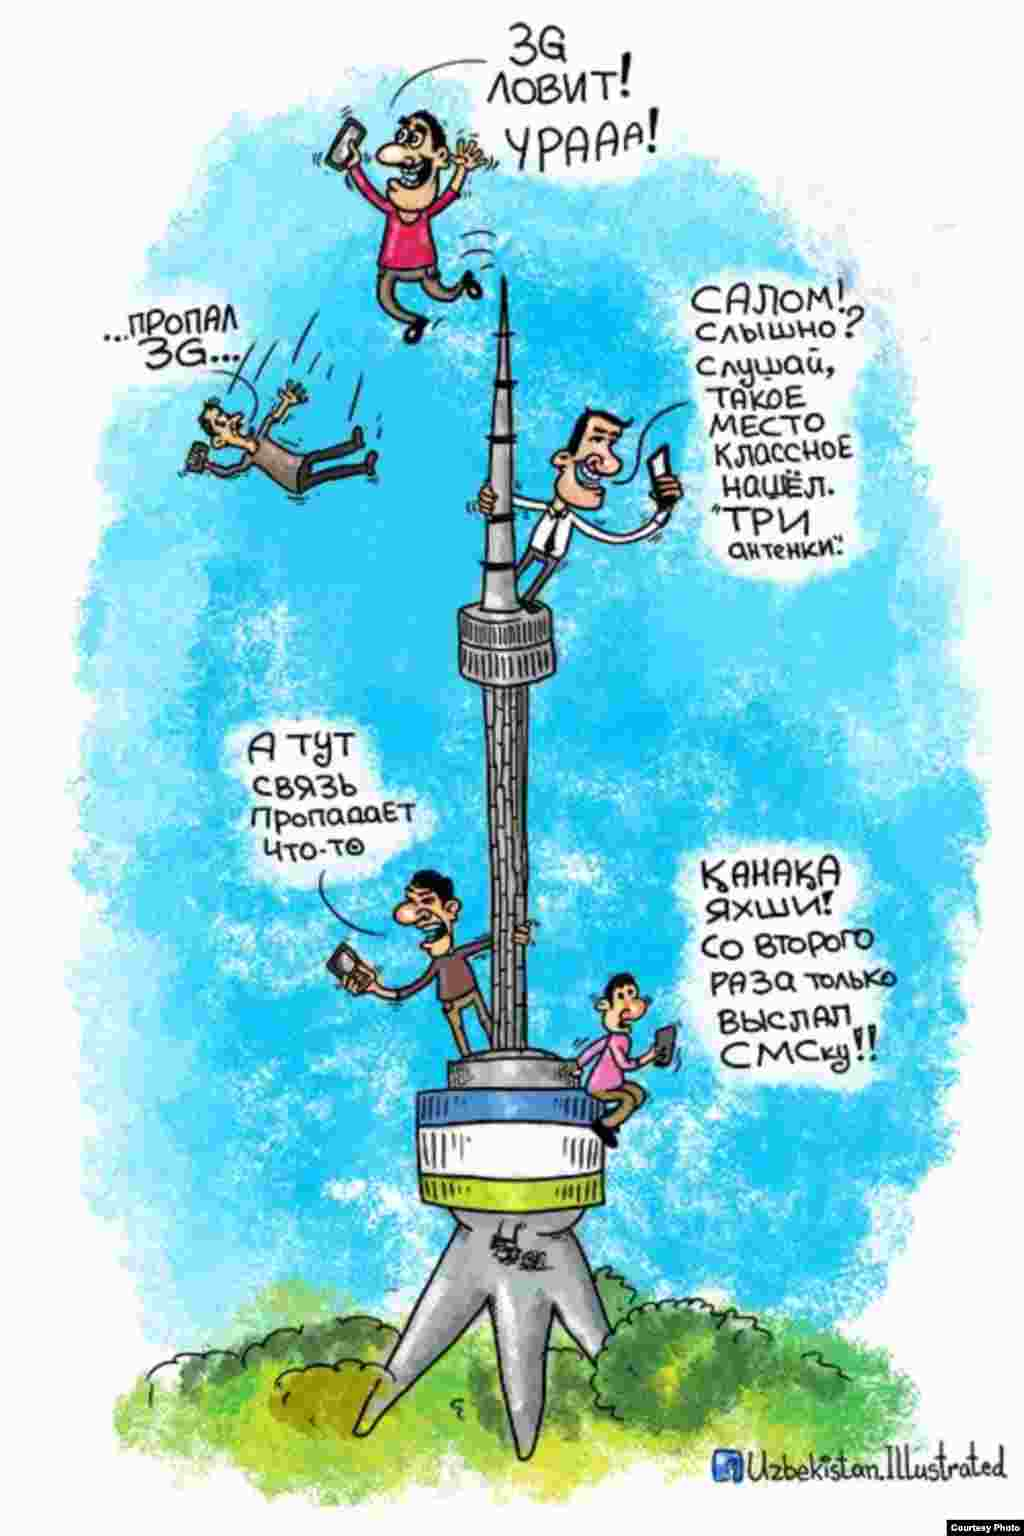 """""""High-quality mobile communication in Uzbekistan."""" Against the backdrop of a crisis last summer at market leader Uzdunrobita that left millions of Uzbek customers without service, Rakhimov is making fun of signal quality. The figure at the top of the tower proclaims, """"I have 3G access,"""" while the figure at the top left says, """"My 3G fell through."""" The figure at the top right asks, """"Hello? Can you hear me? This is such a great spot, I found three antennas."""" The figure at the bottom complains, """"And my connection is getting lost here somehow."""" The figure at bottom right says, """"Not bad, generally -- I managed to send an SMS on my second attempt."""""""